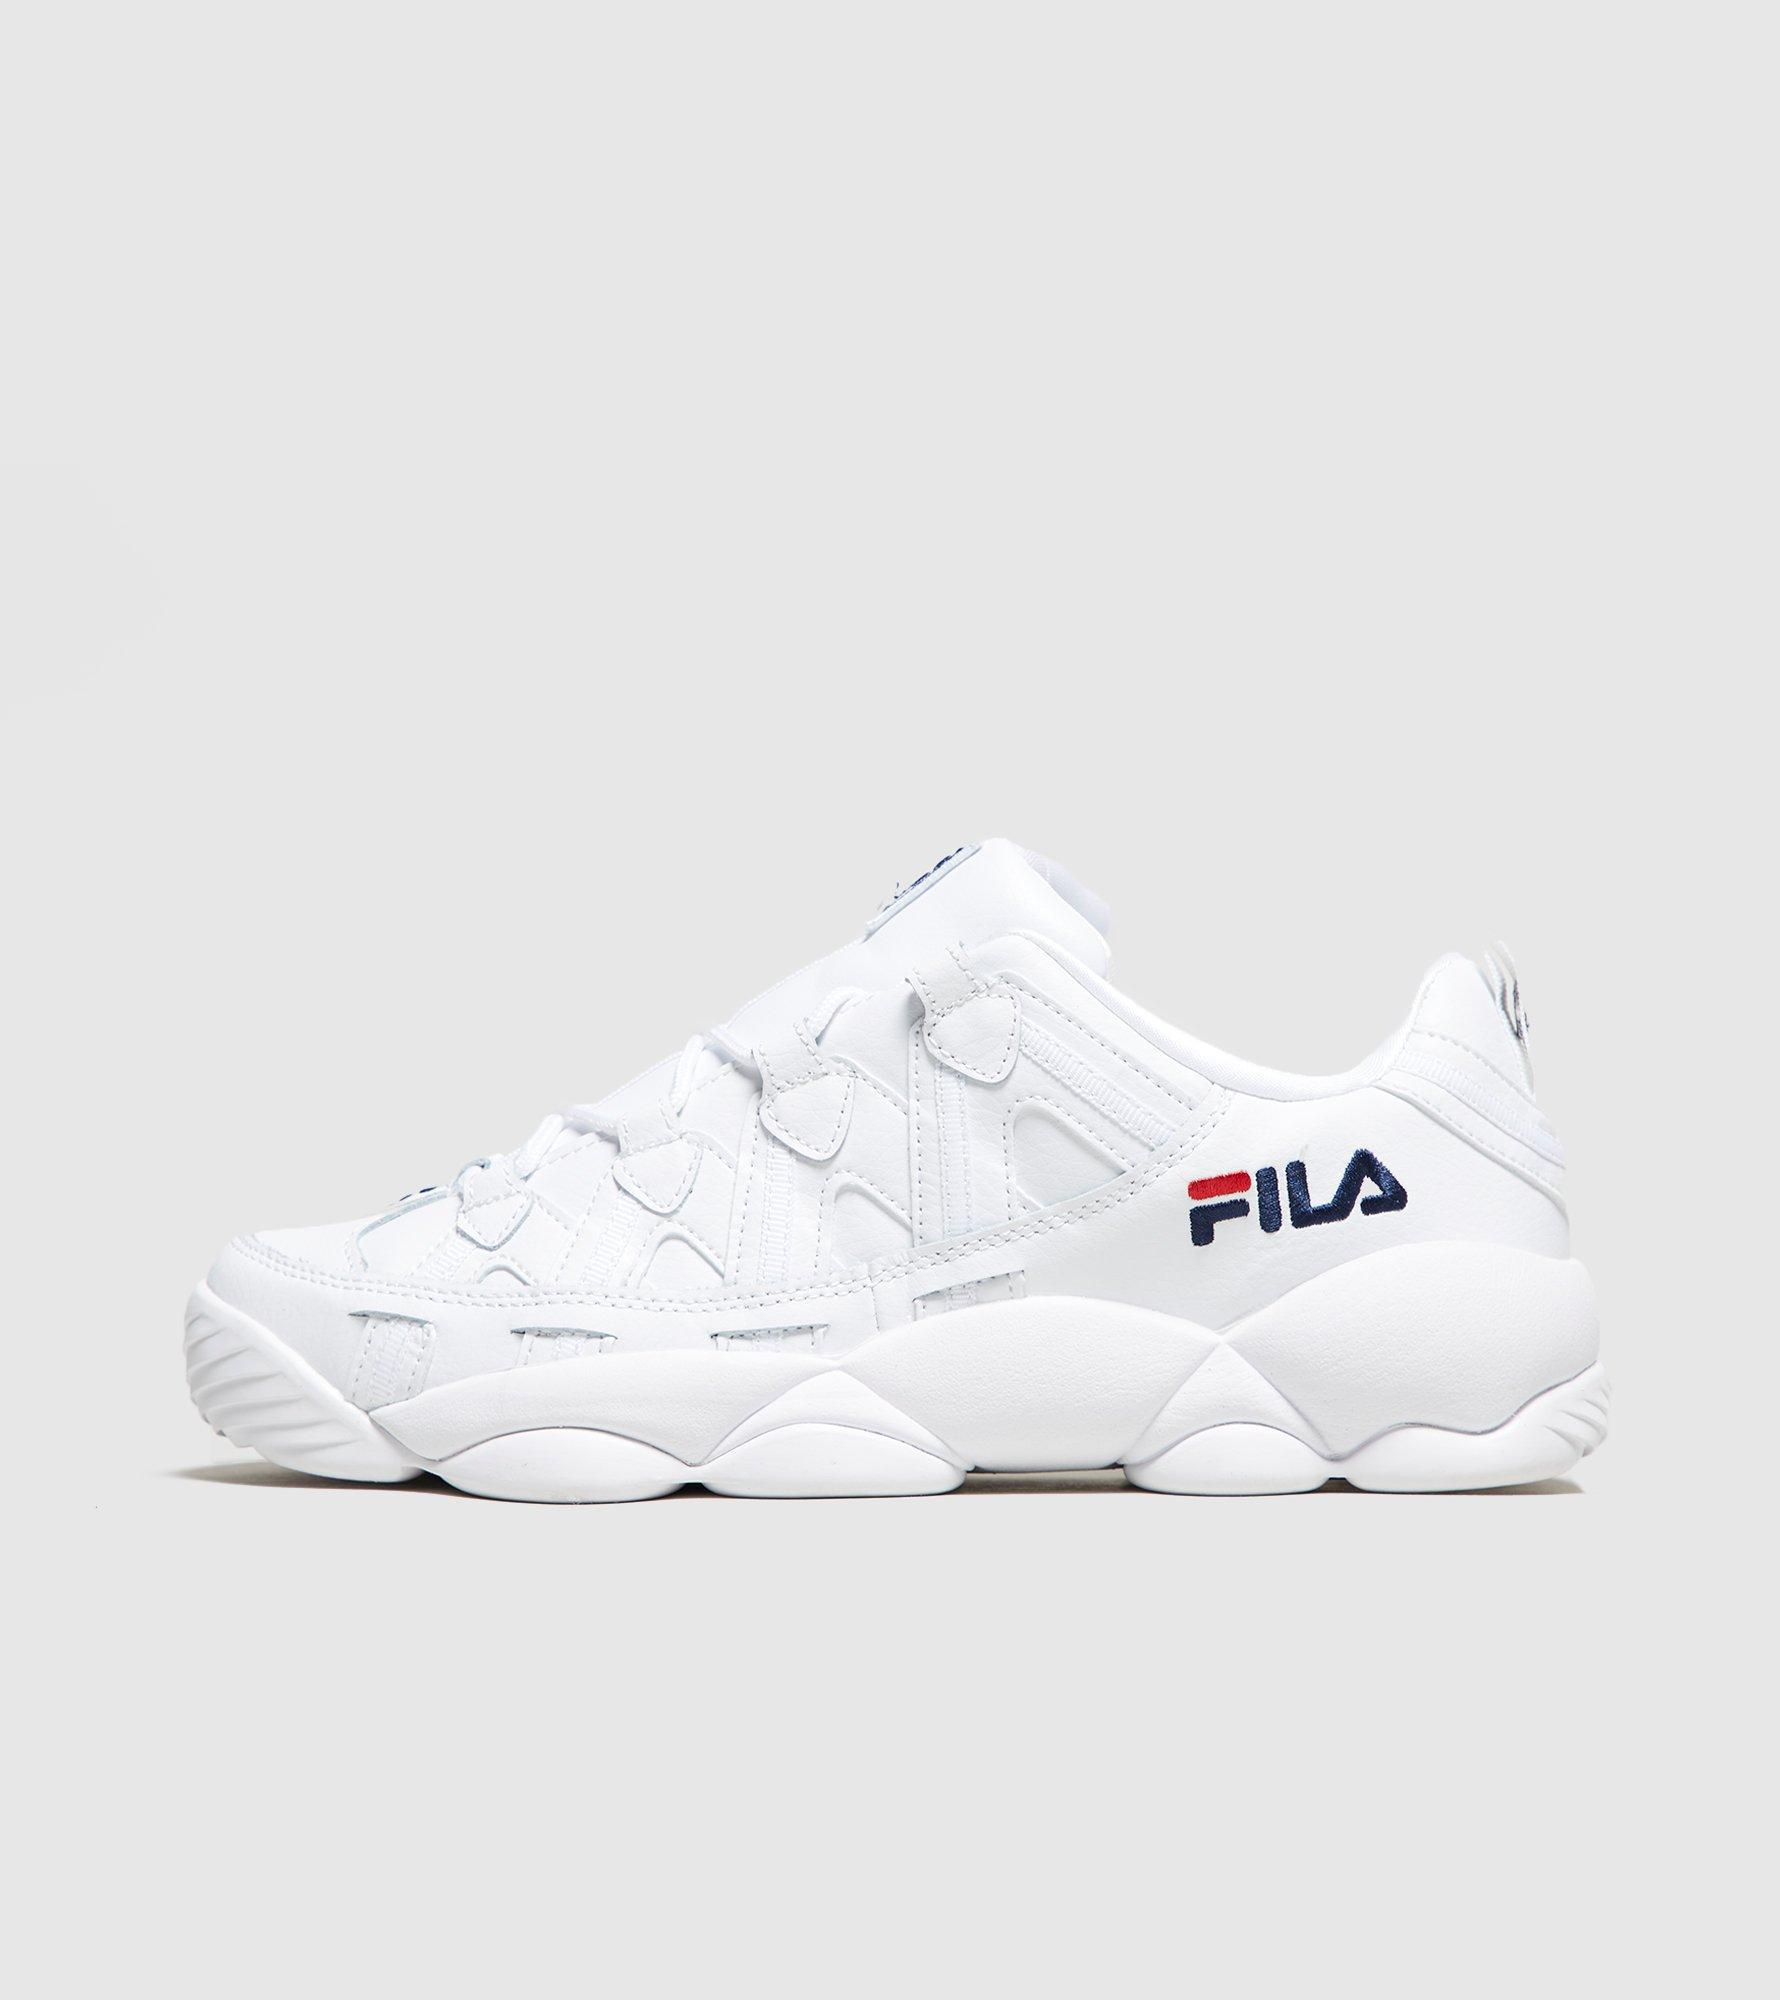 Fila Leather Spaghetti Low in White/Navy (White) for Men - Lyst